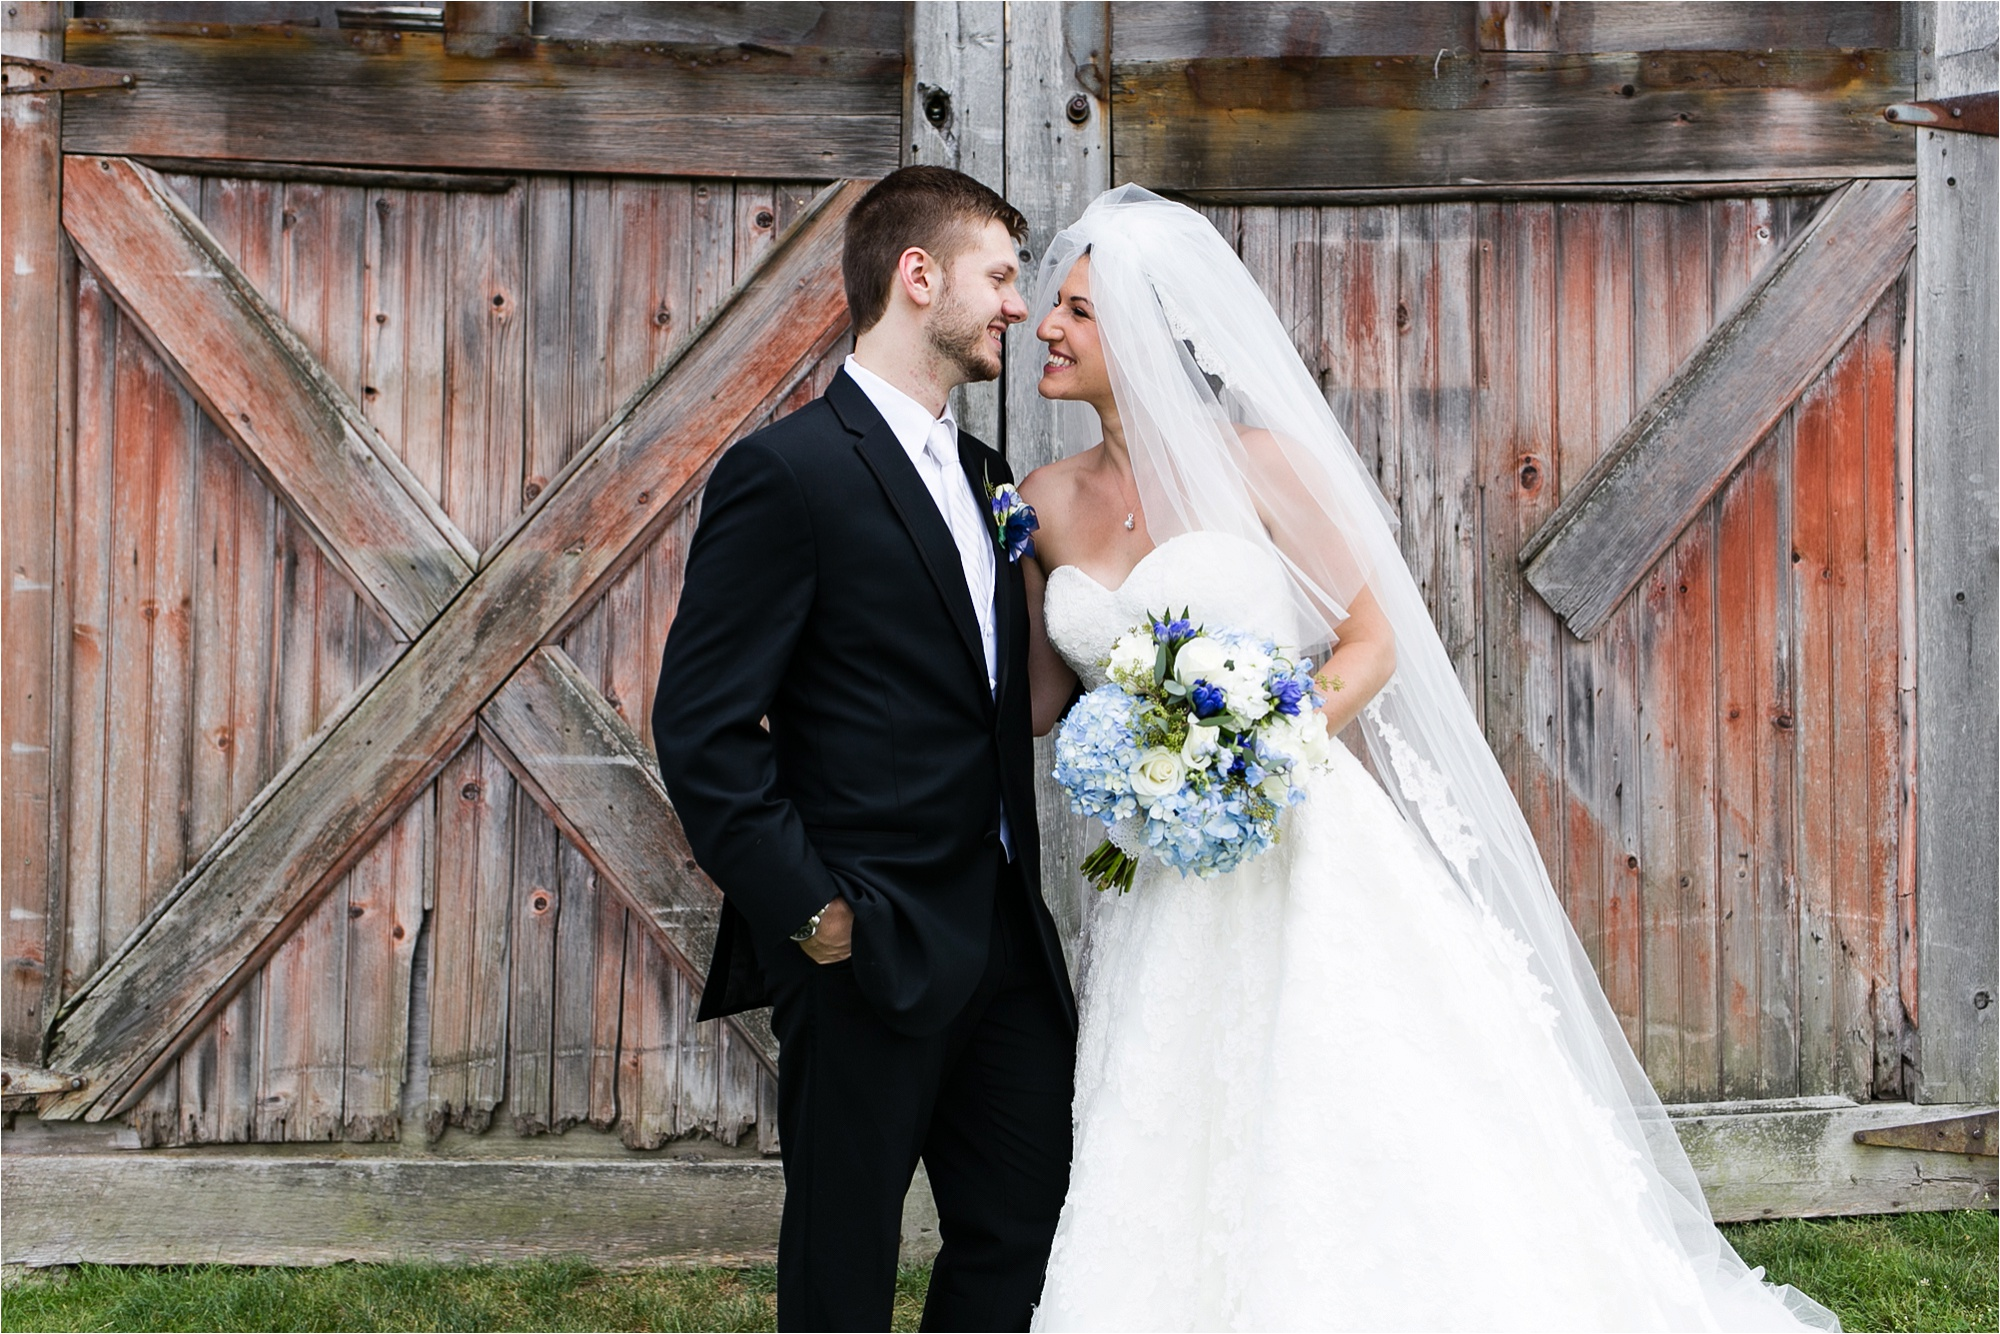 Rustic ol' barns are the perfect backdrop for outdoor wedding portraits